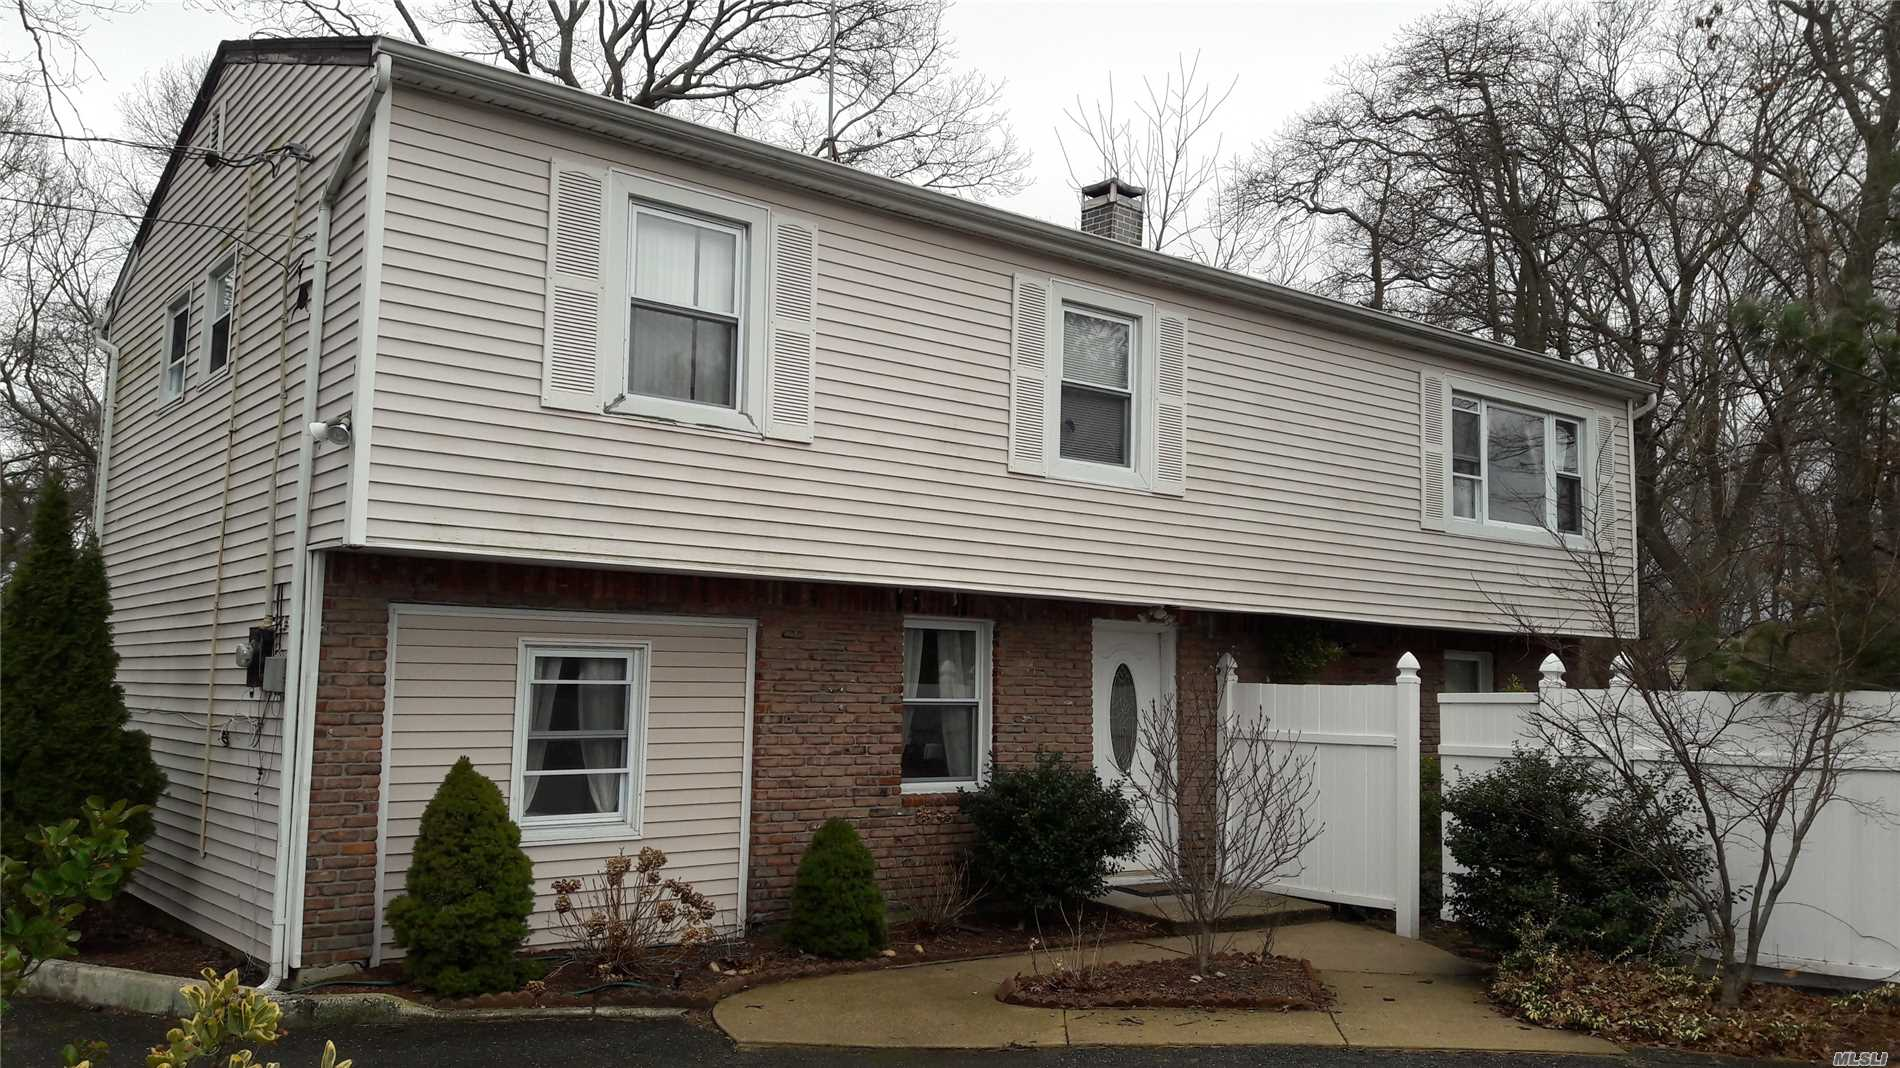 Come and look at this beautiful high ranch. Conveniently located near the Long Island Expressway. Entrance to property with proper permits is at the end Laurel Street. This lovely homes offers plenty of space an even room for mom. Don't wait, come and see before is gone!!